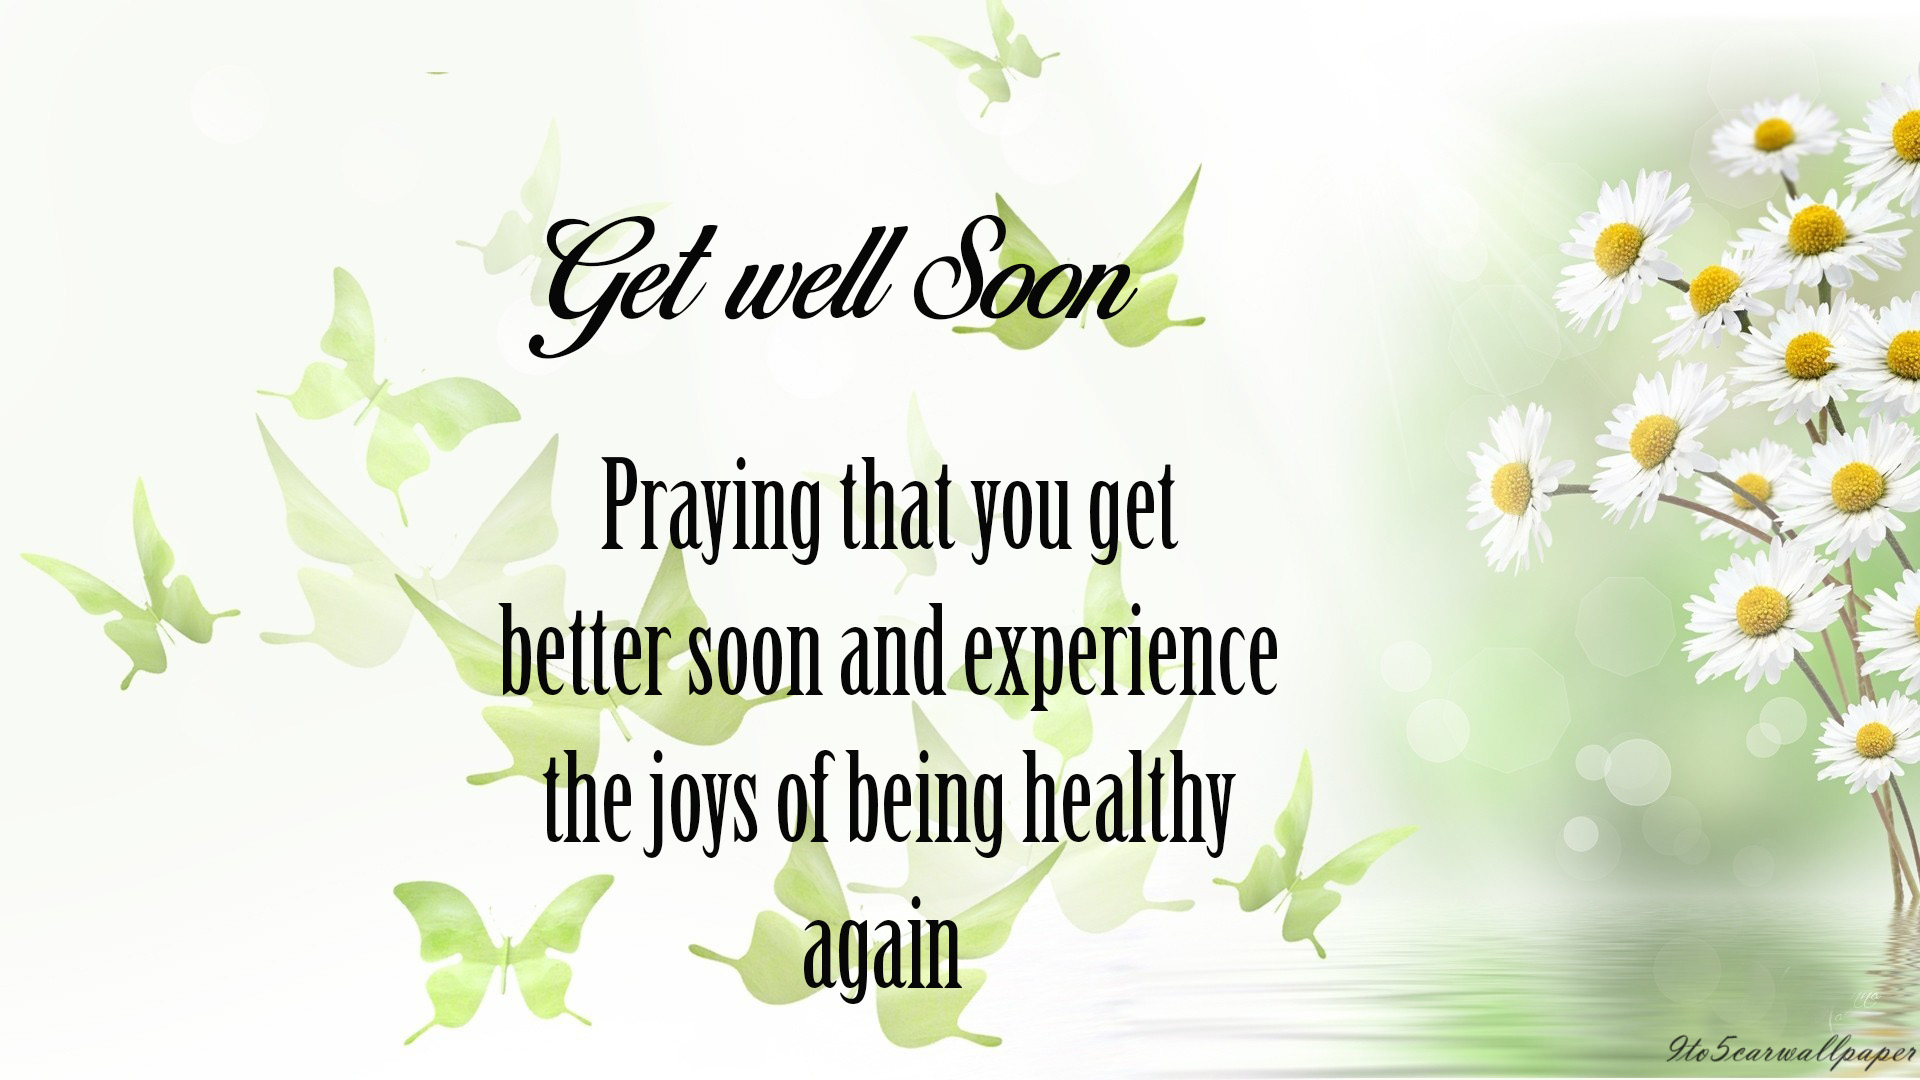 Get Better Soon Wishes & Quotes 2018